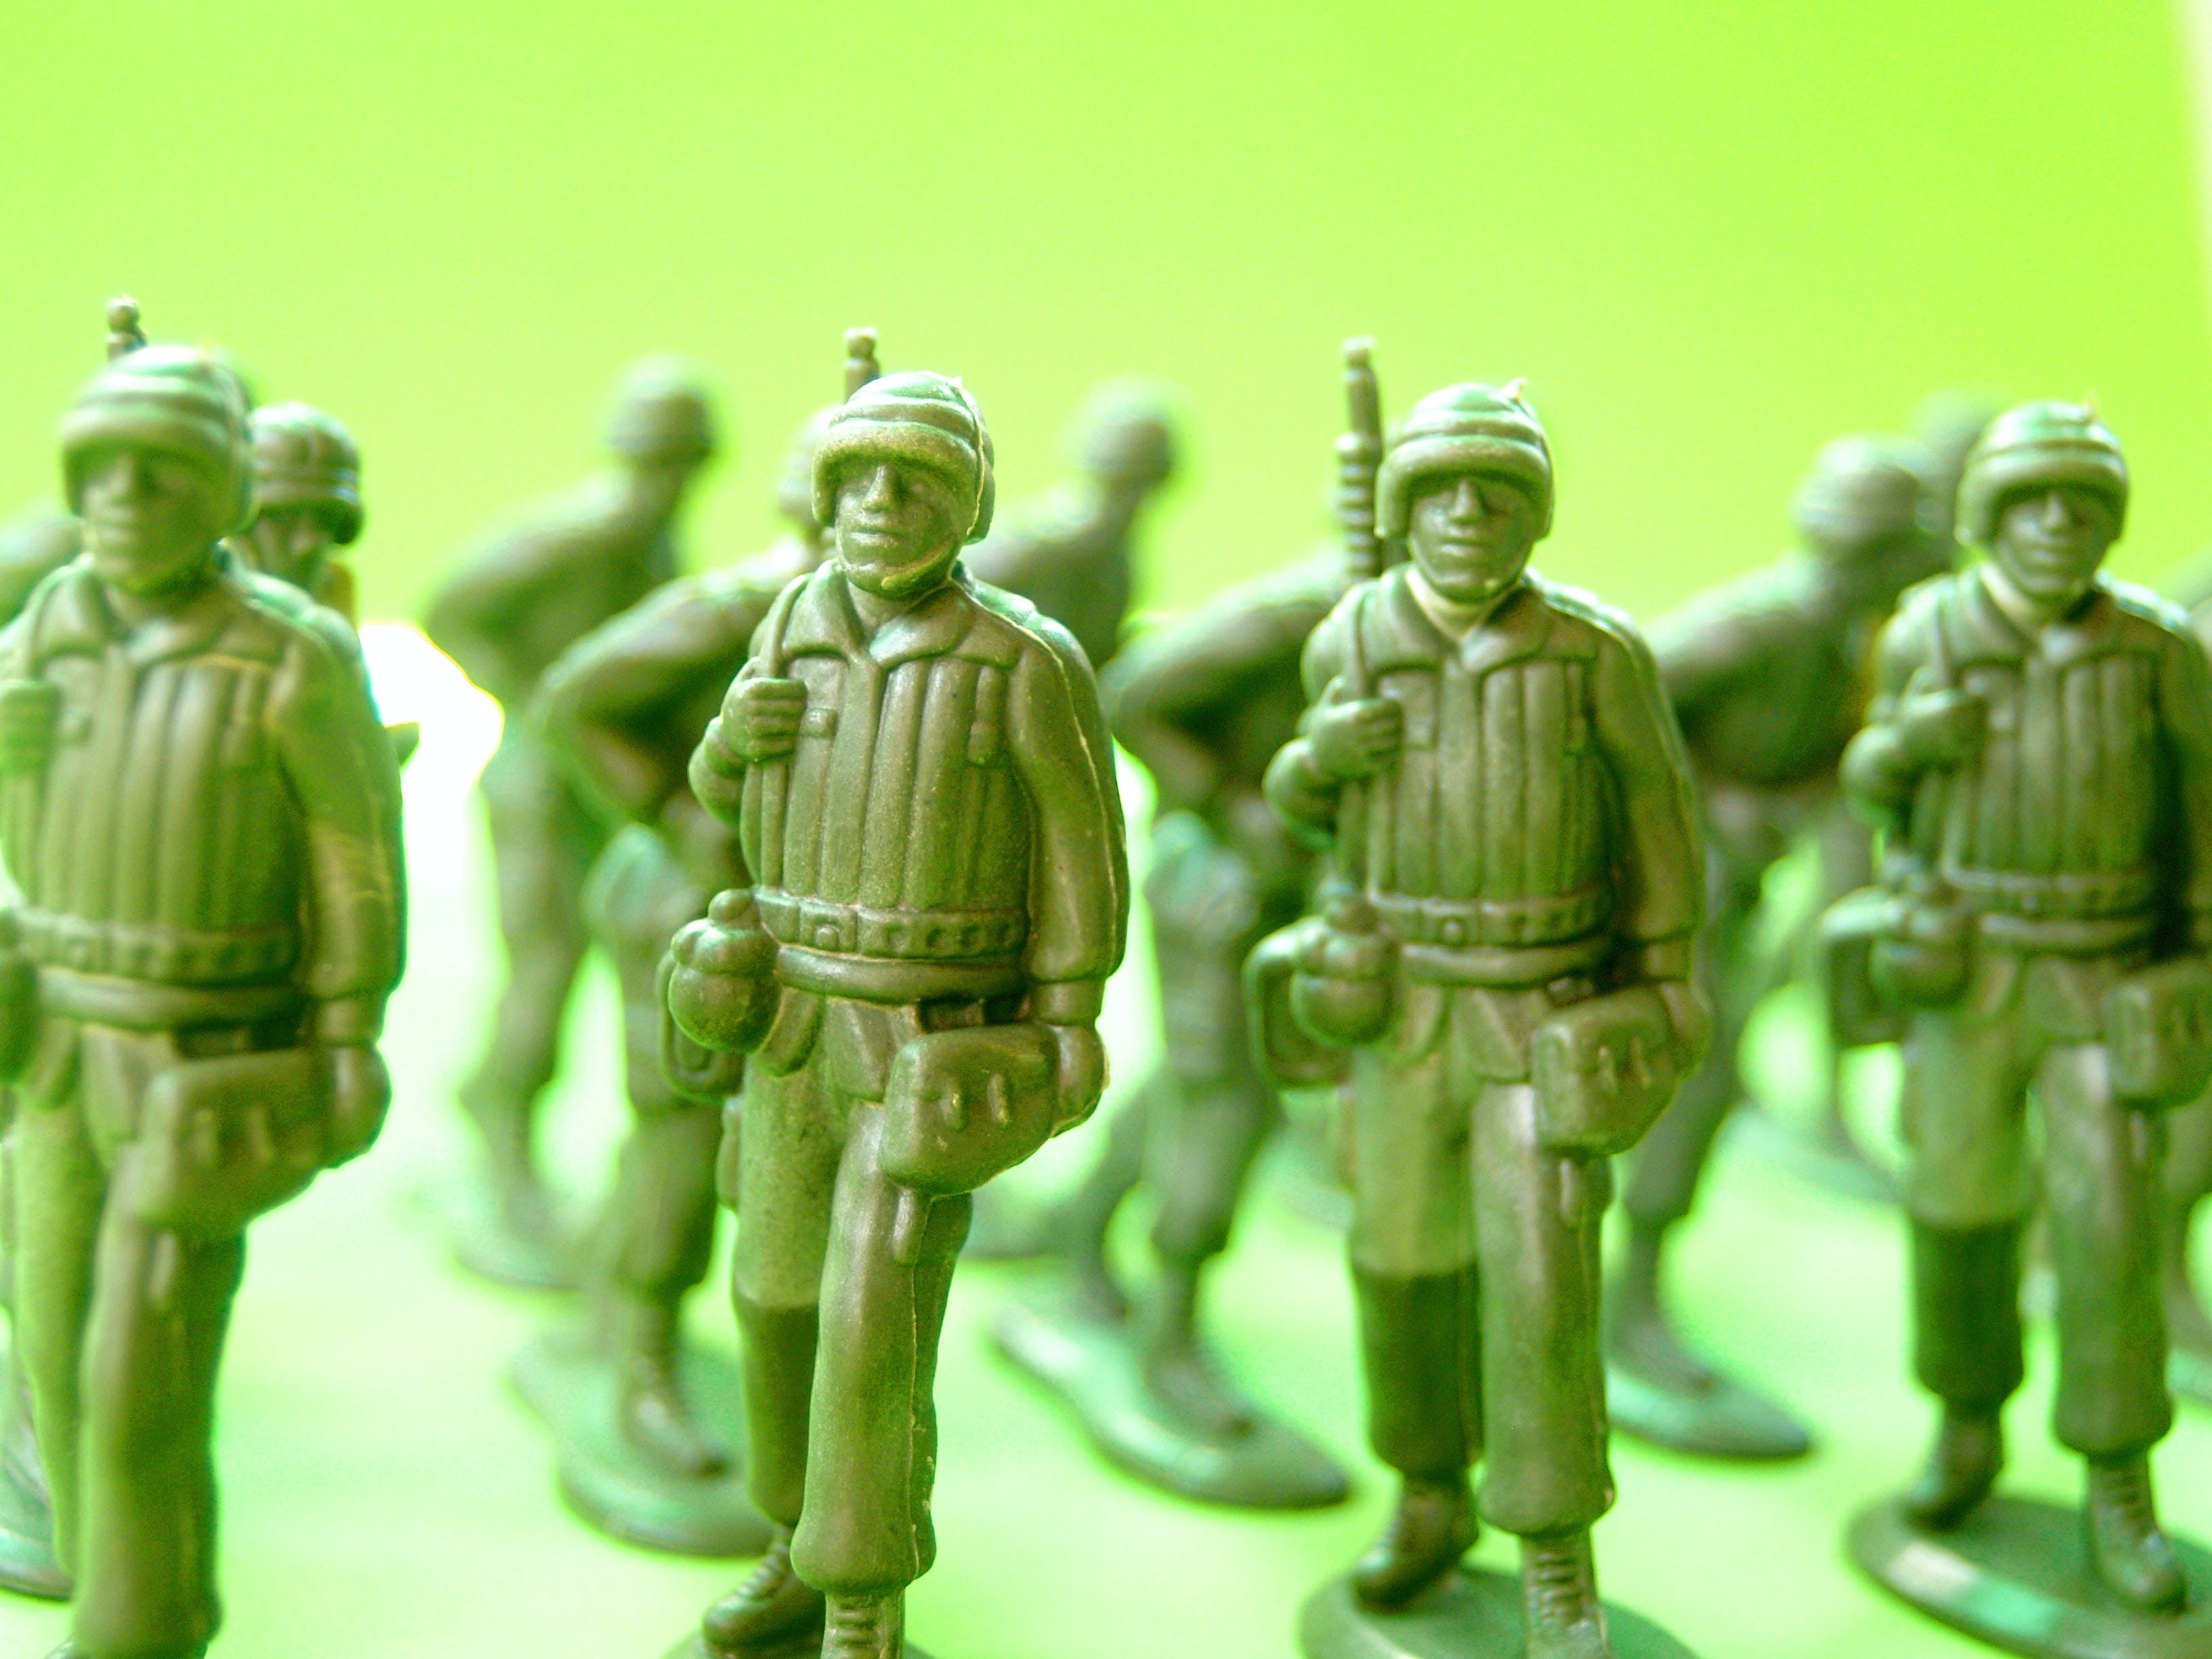 Marching Soldiers Plastic Figurines